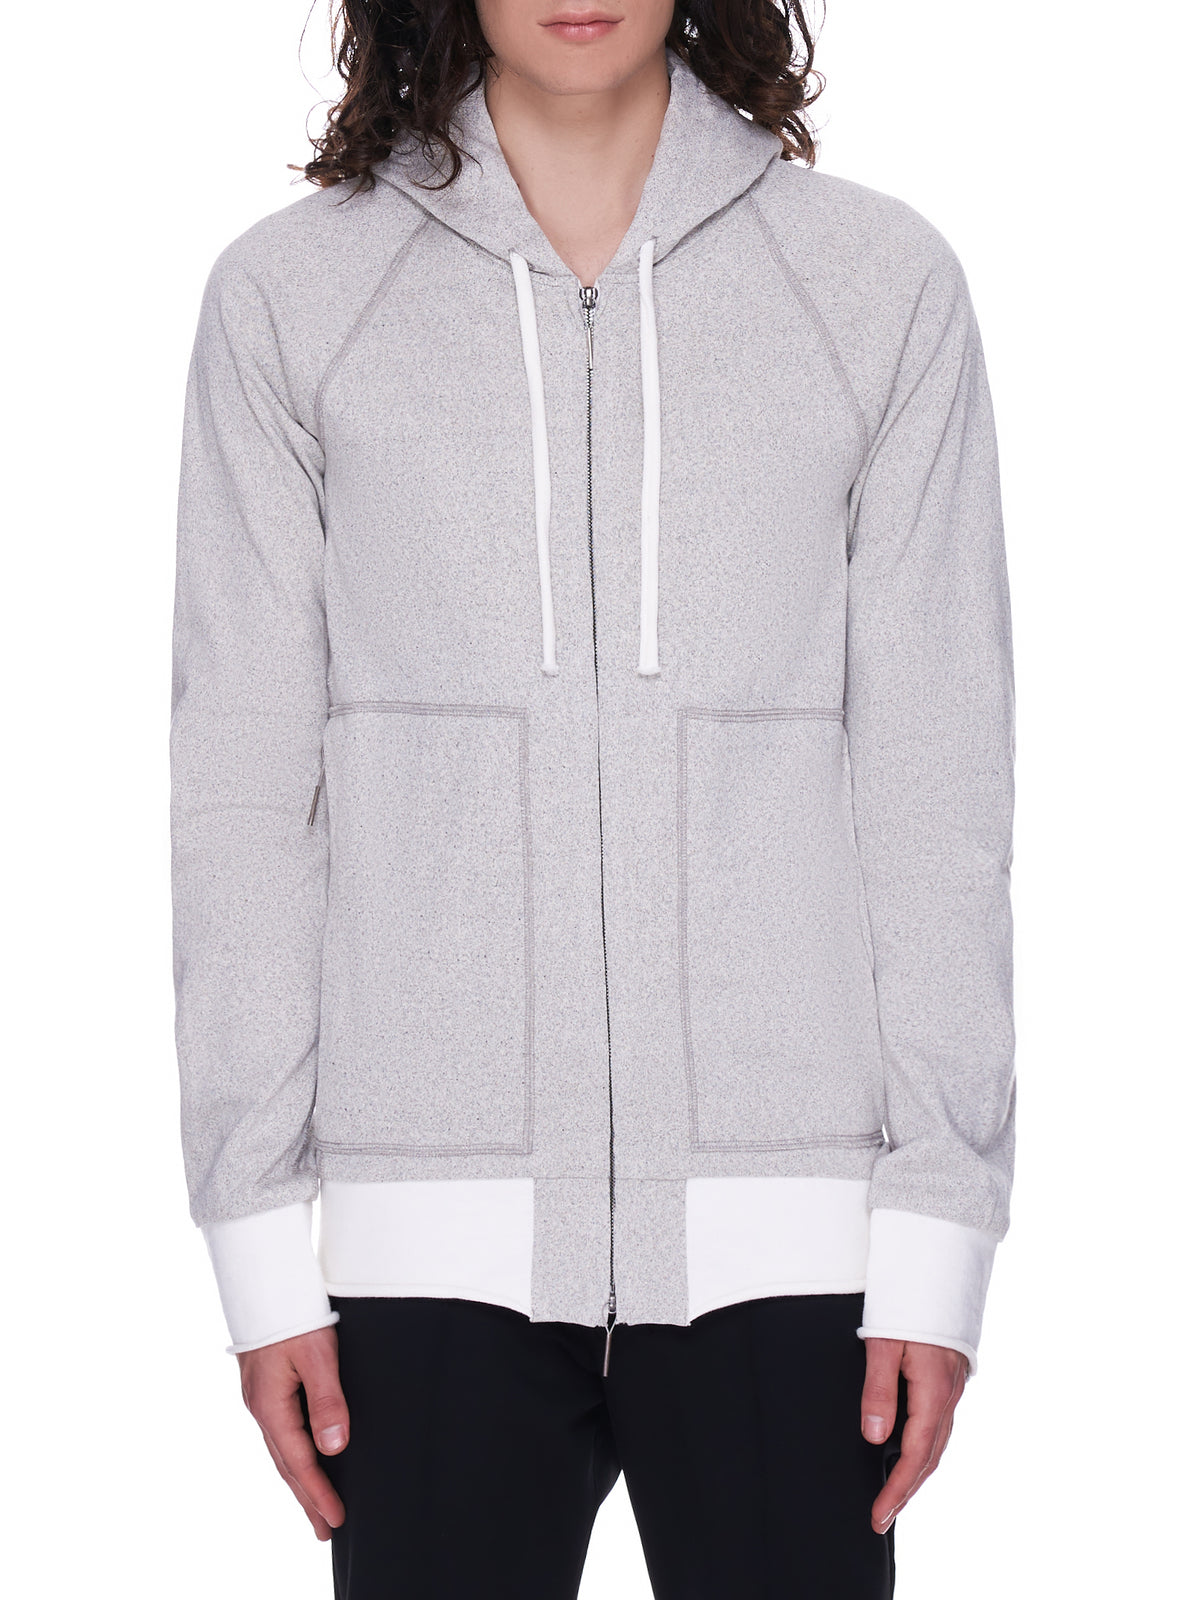 Sweat Parka (SWEAT-PARKA-INK-GRAY)